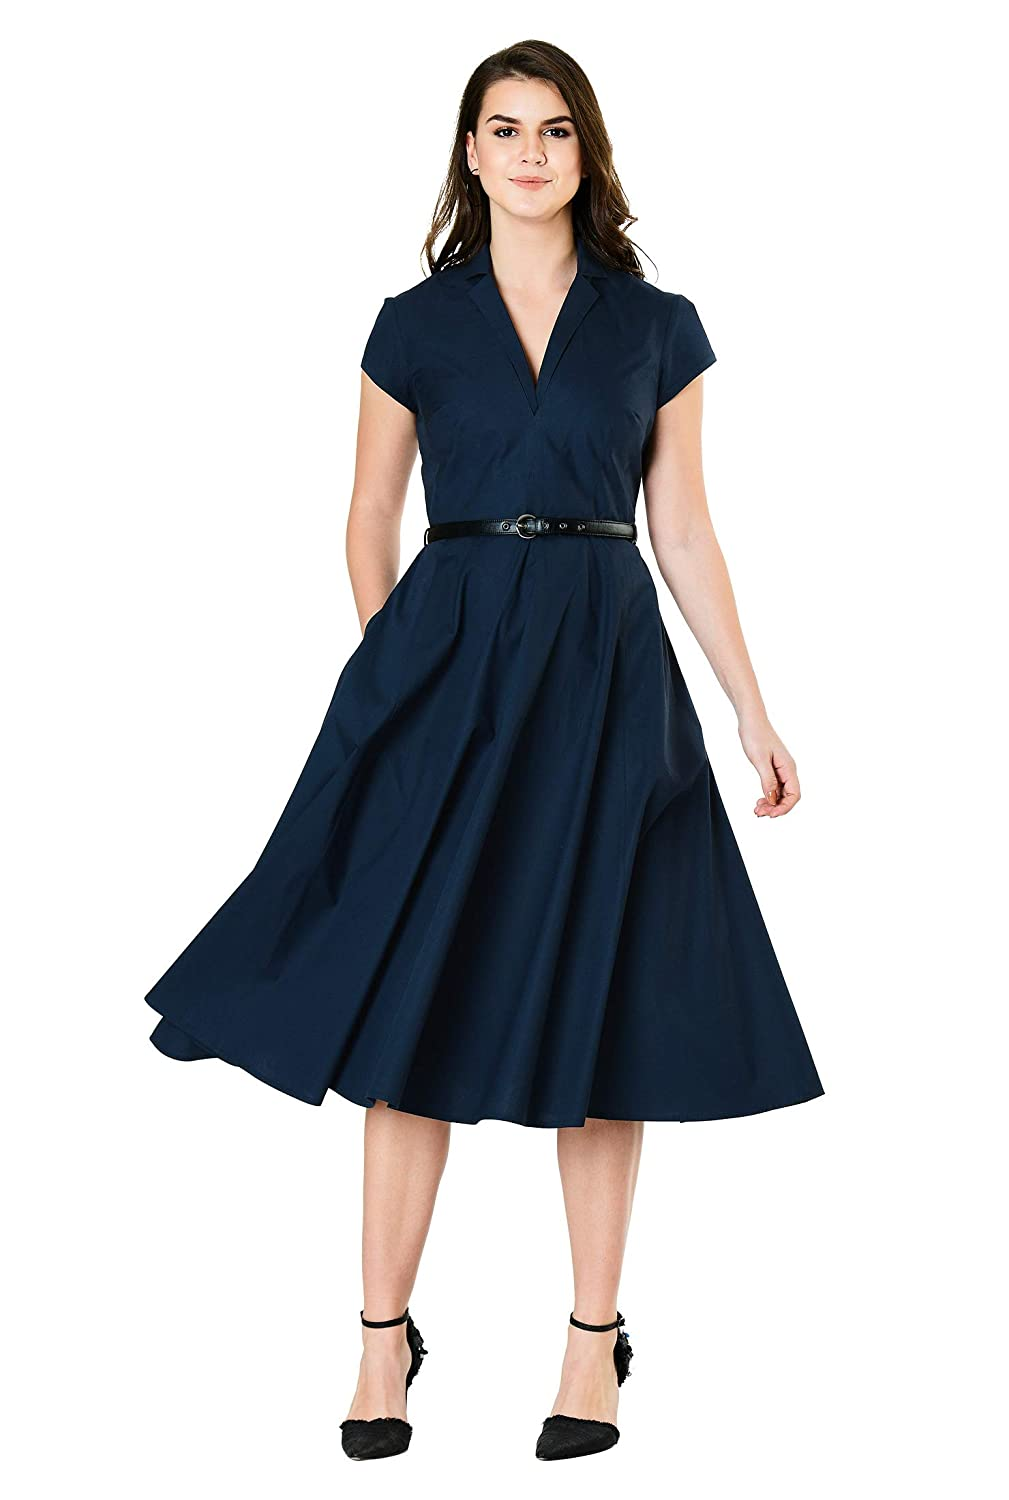 1940s Dresses | 40s Dress, Swing Dress eShakti Womens Notch Collar Cotton poplin Belted Dress $69.95 AT vintagedancer.com